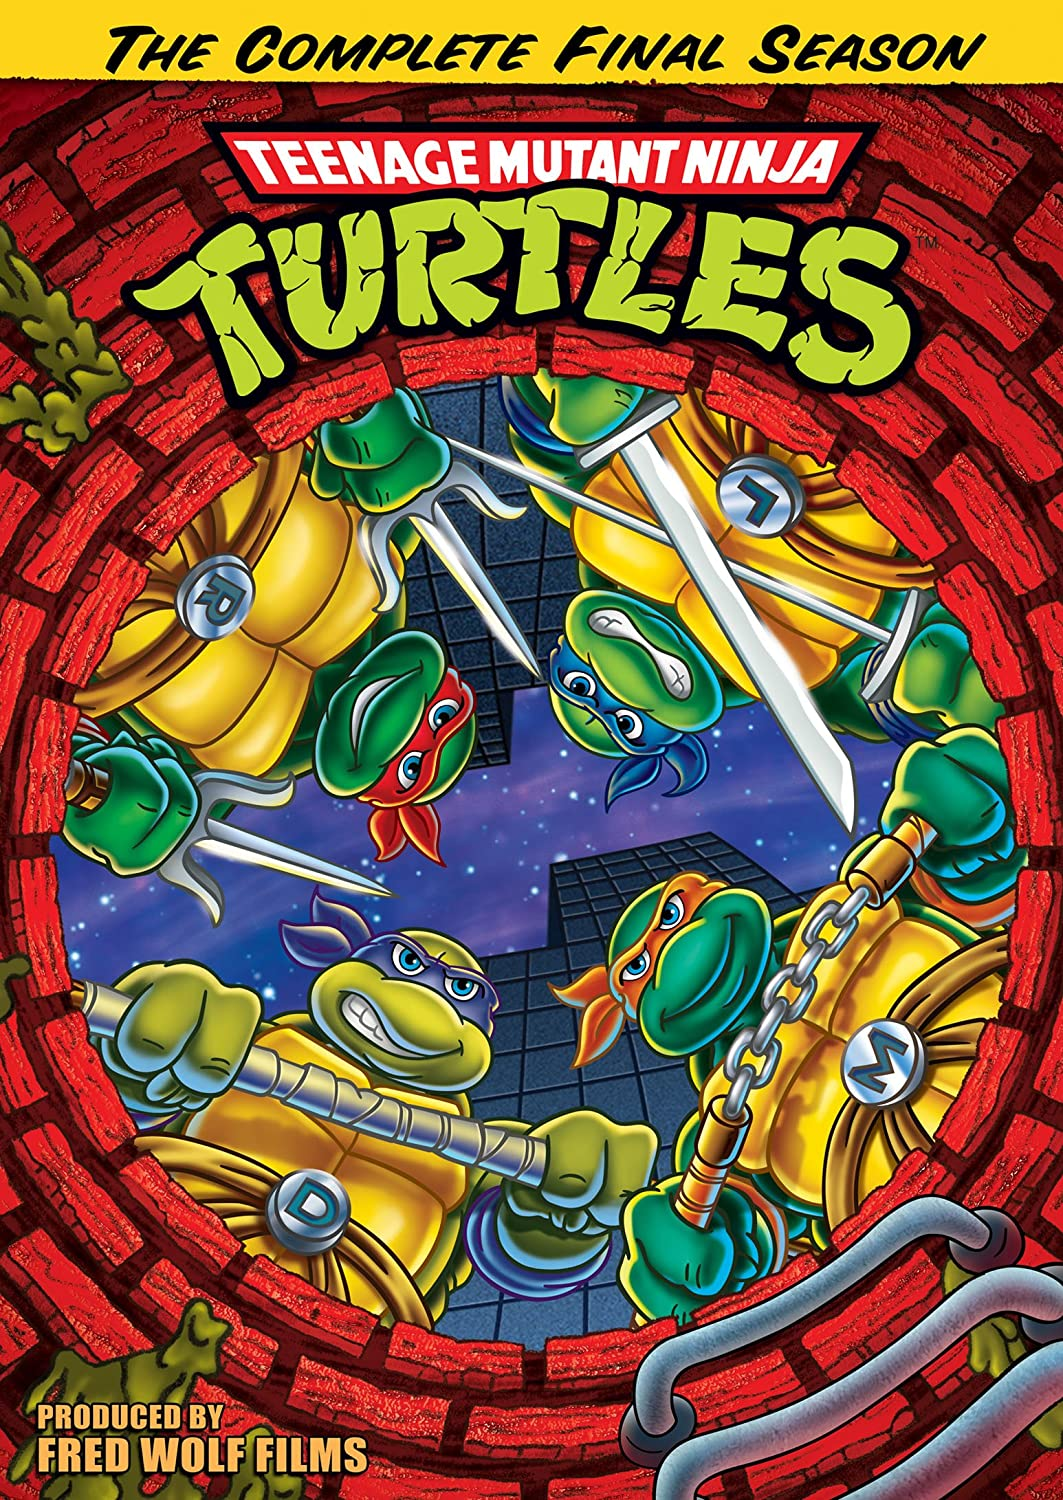 Amazon.com: Teenage Mutant Ninja Turtles Season 10: The ...